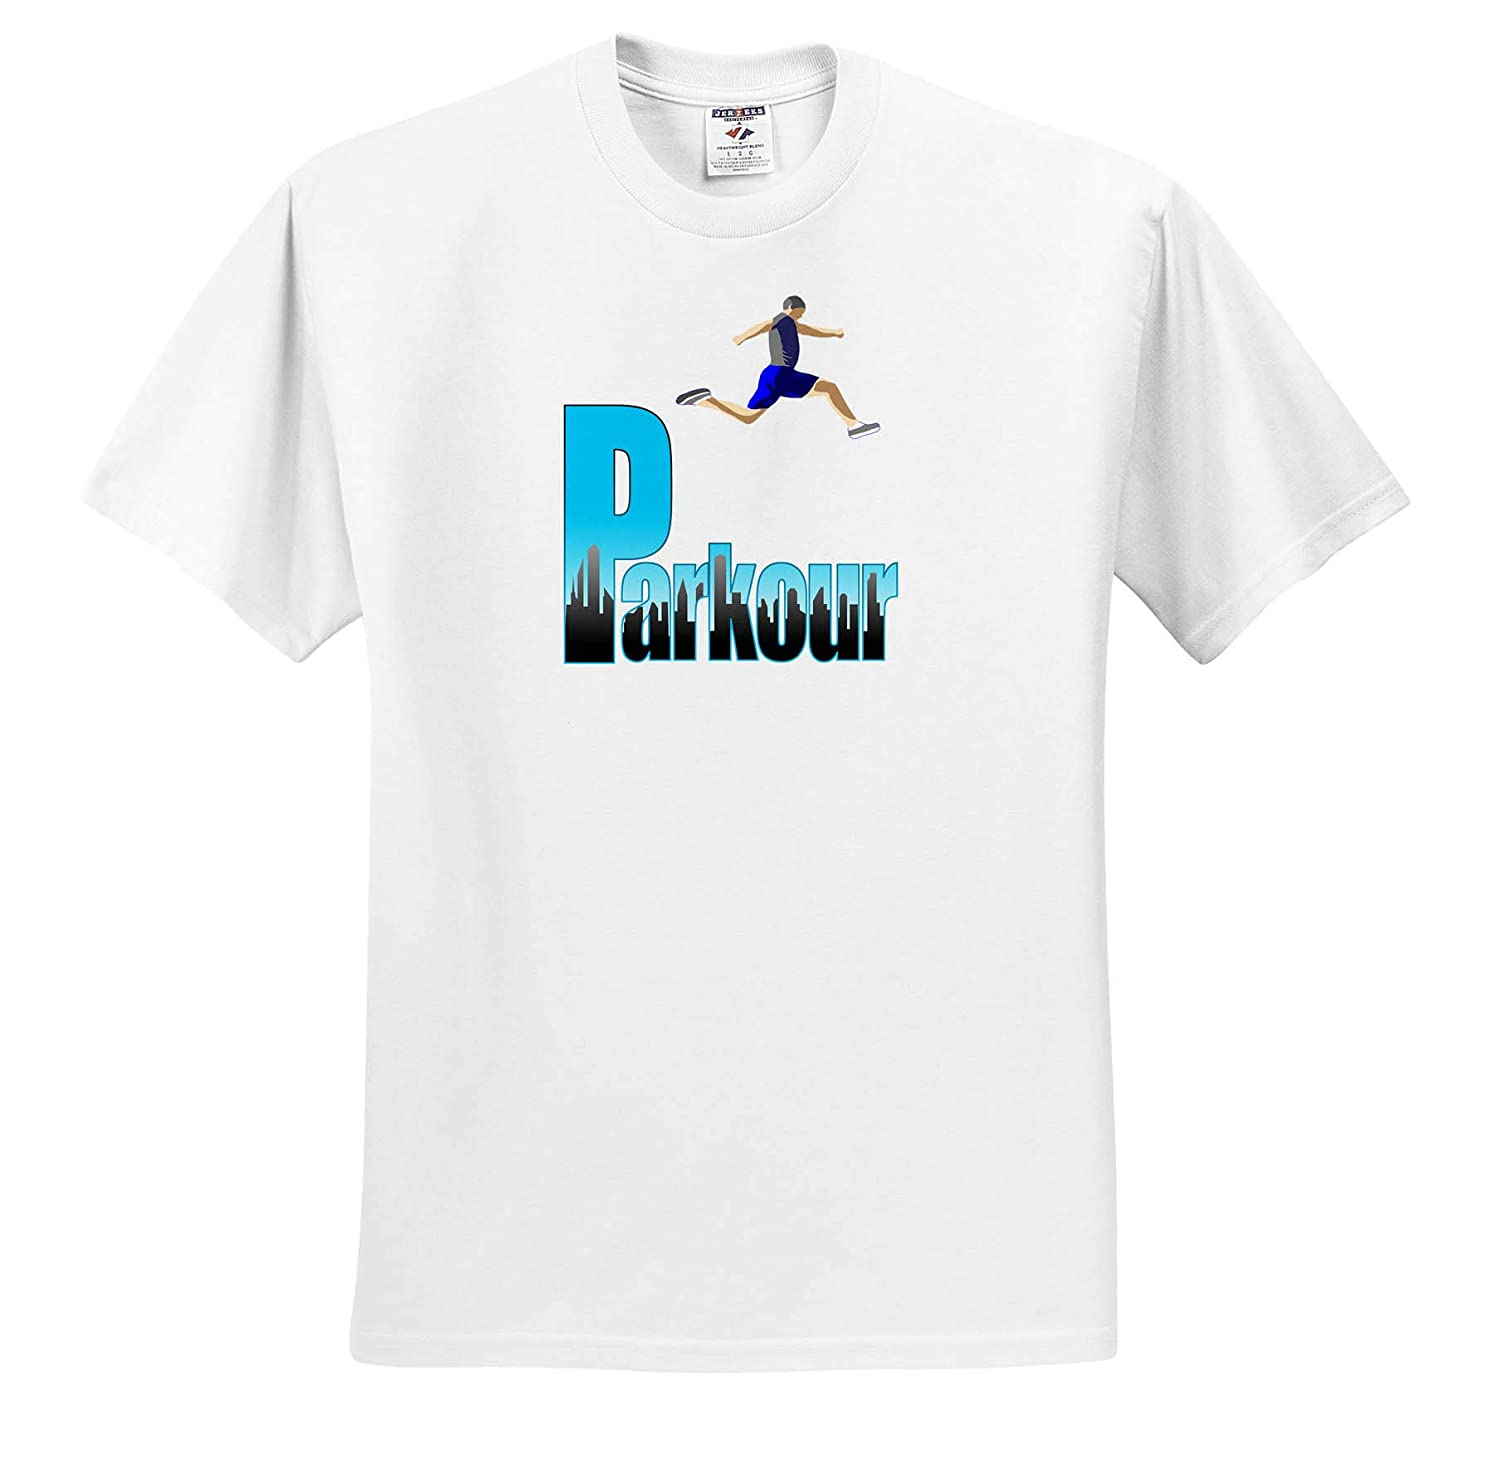 Show Support for The Extreme Sport of Parkour Freerunning - T-Shirts 3dRose Macdonald Creative Studios Parkour